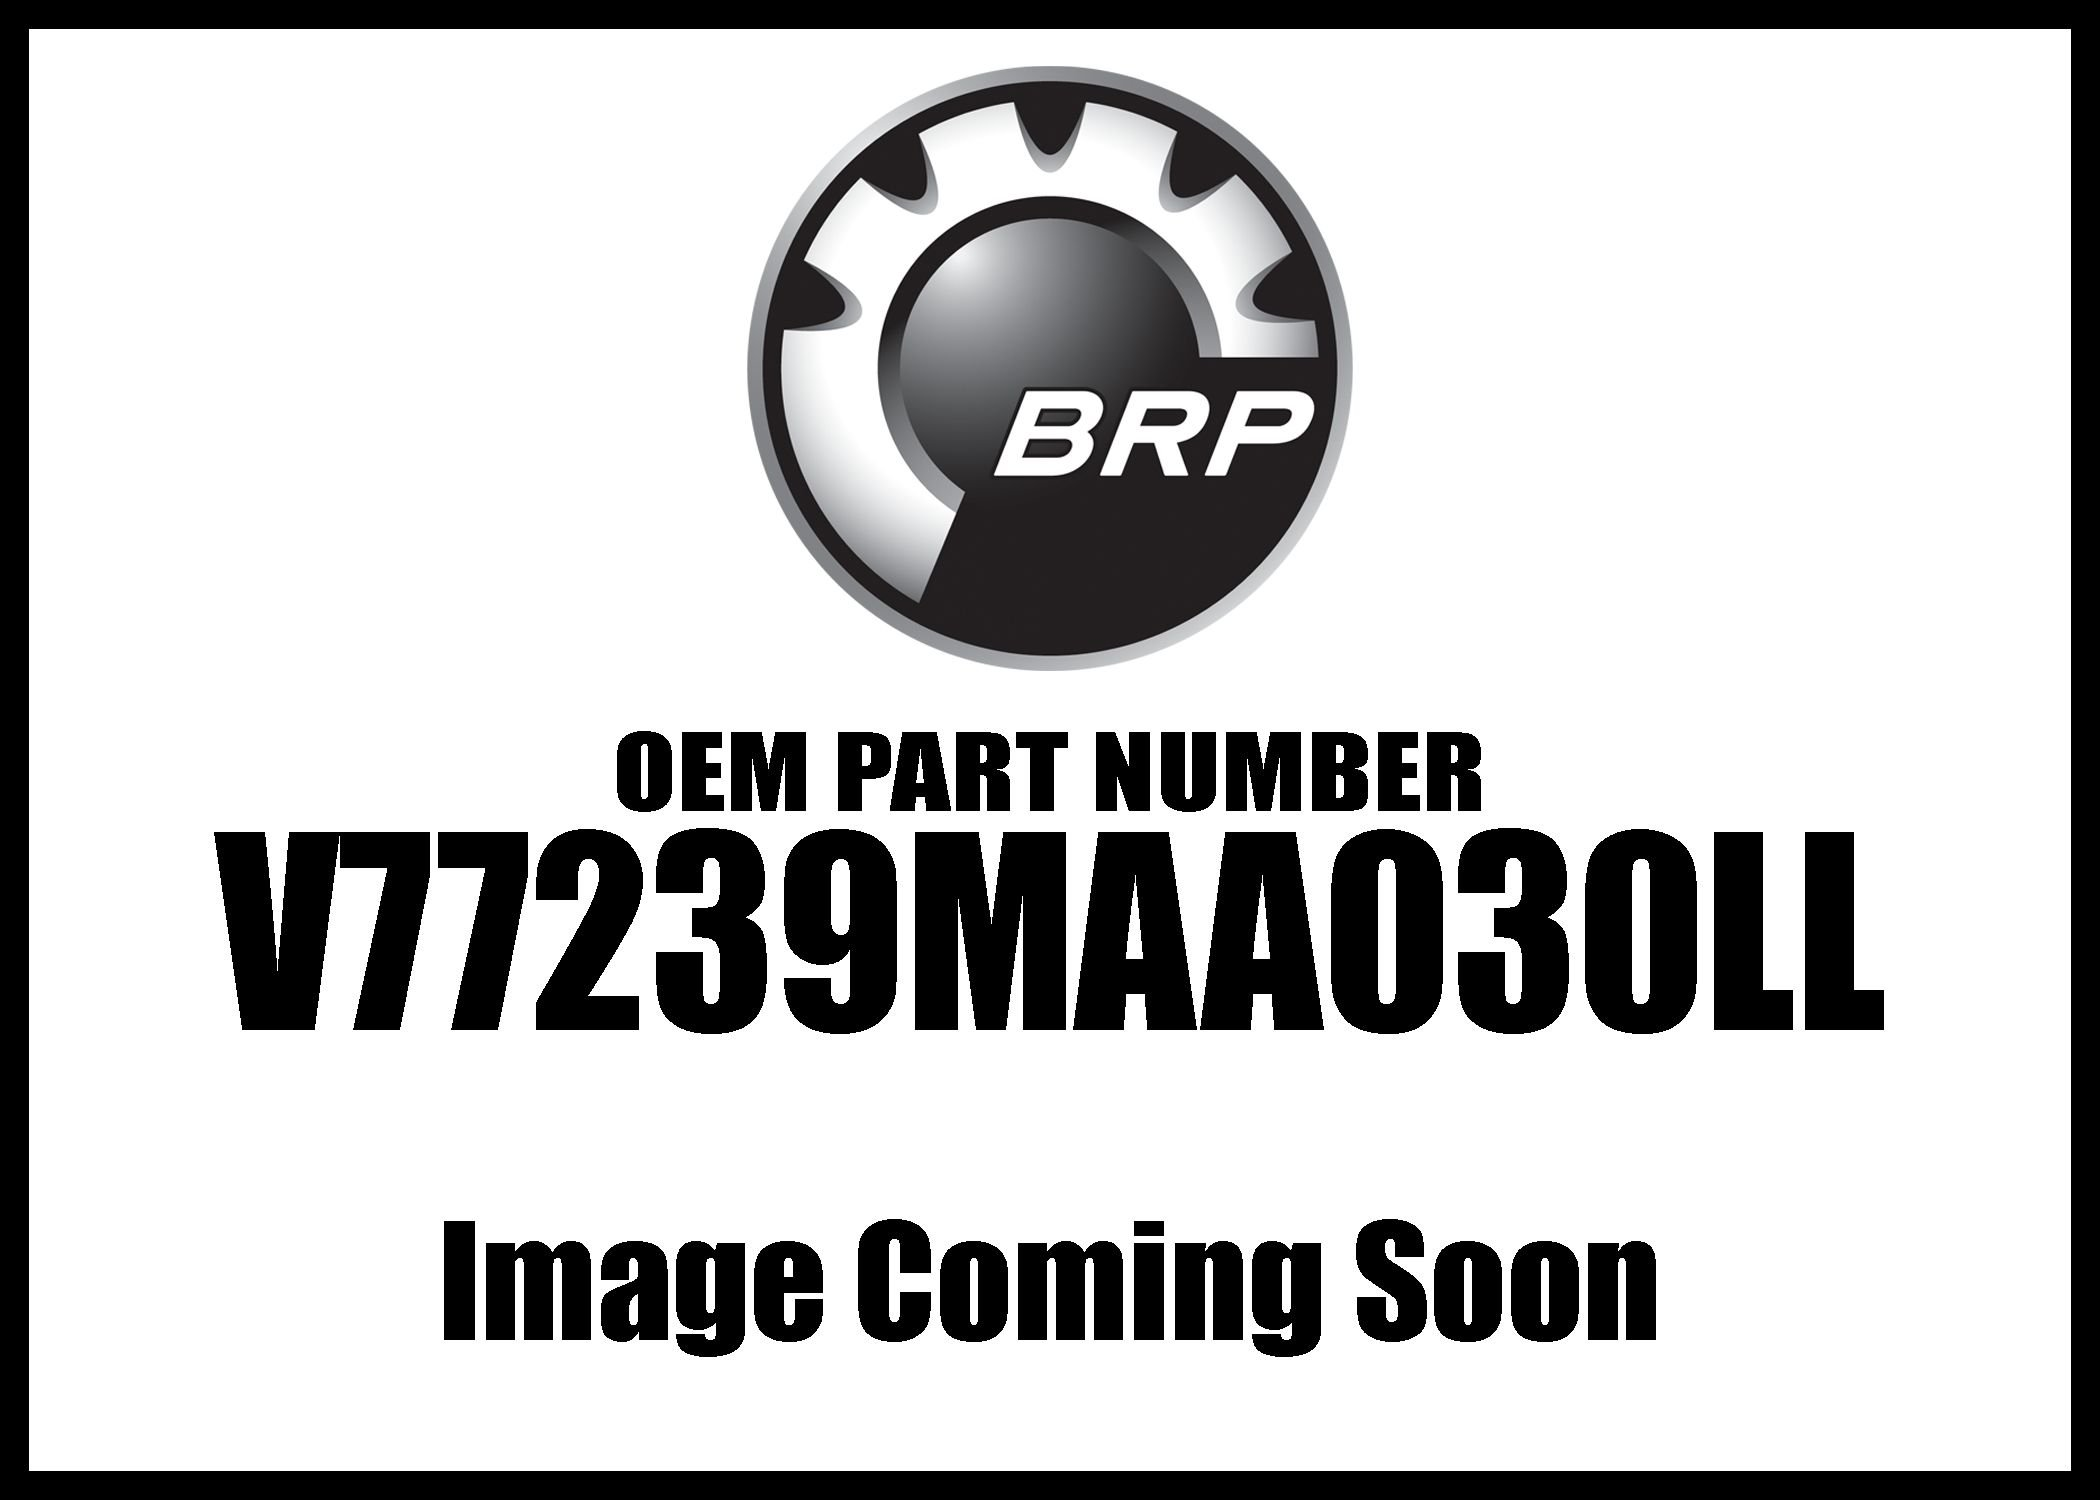 Can-Am 2011-2018 Ds 90 Ds 70 Mini Seat Lock V77239maa030ll New Oem